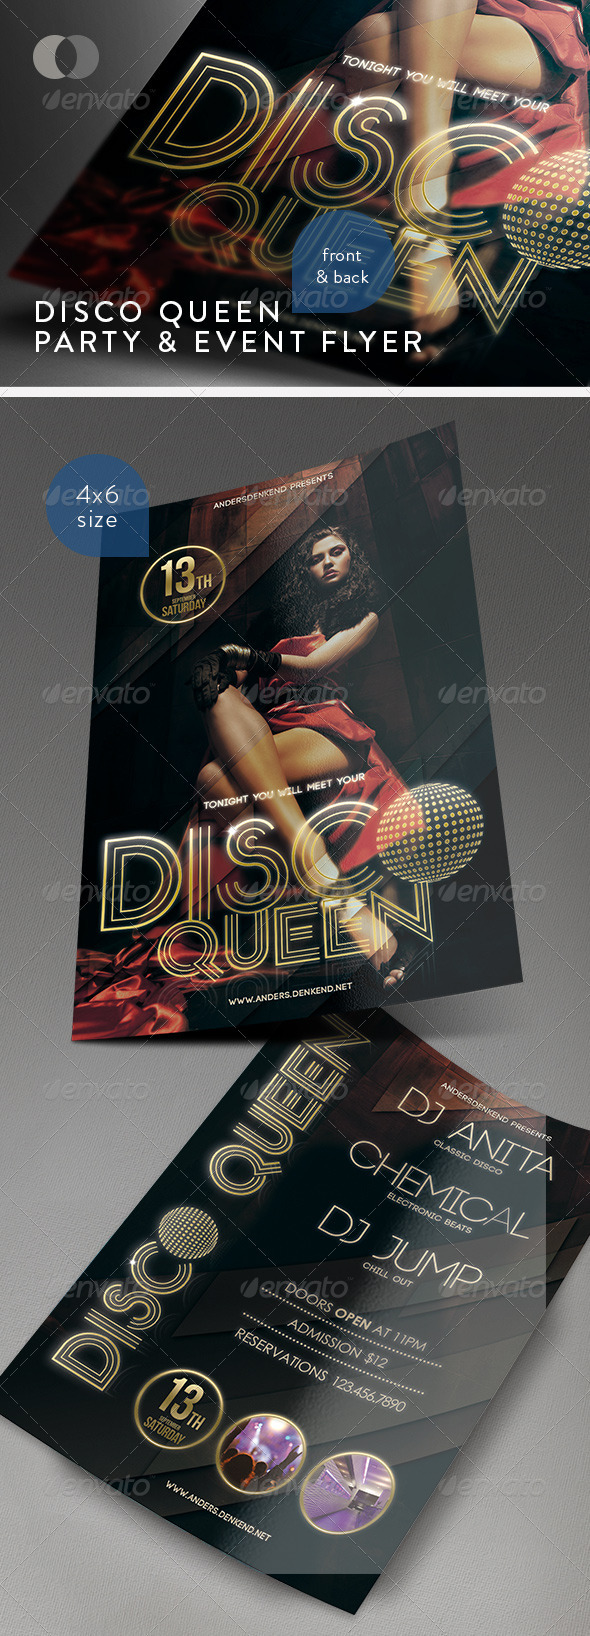 Music & Event Flyer - Disco Queen - Clubs & Parties Events